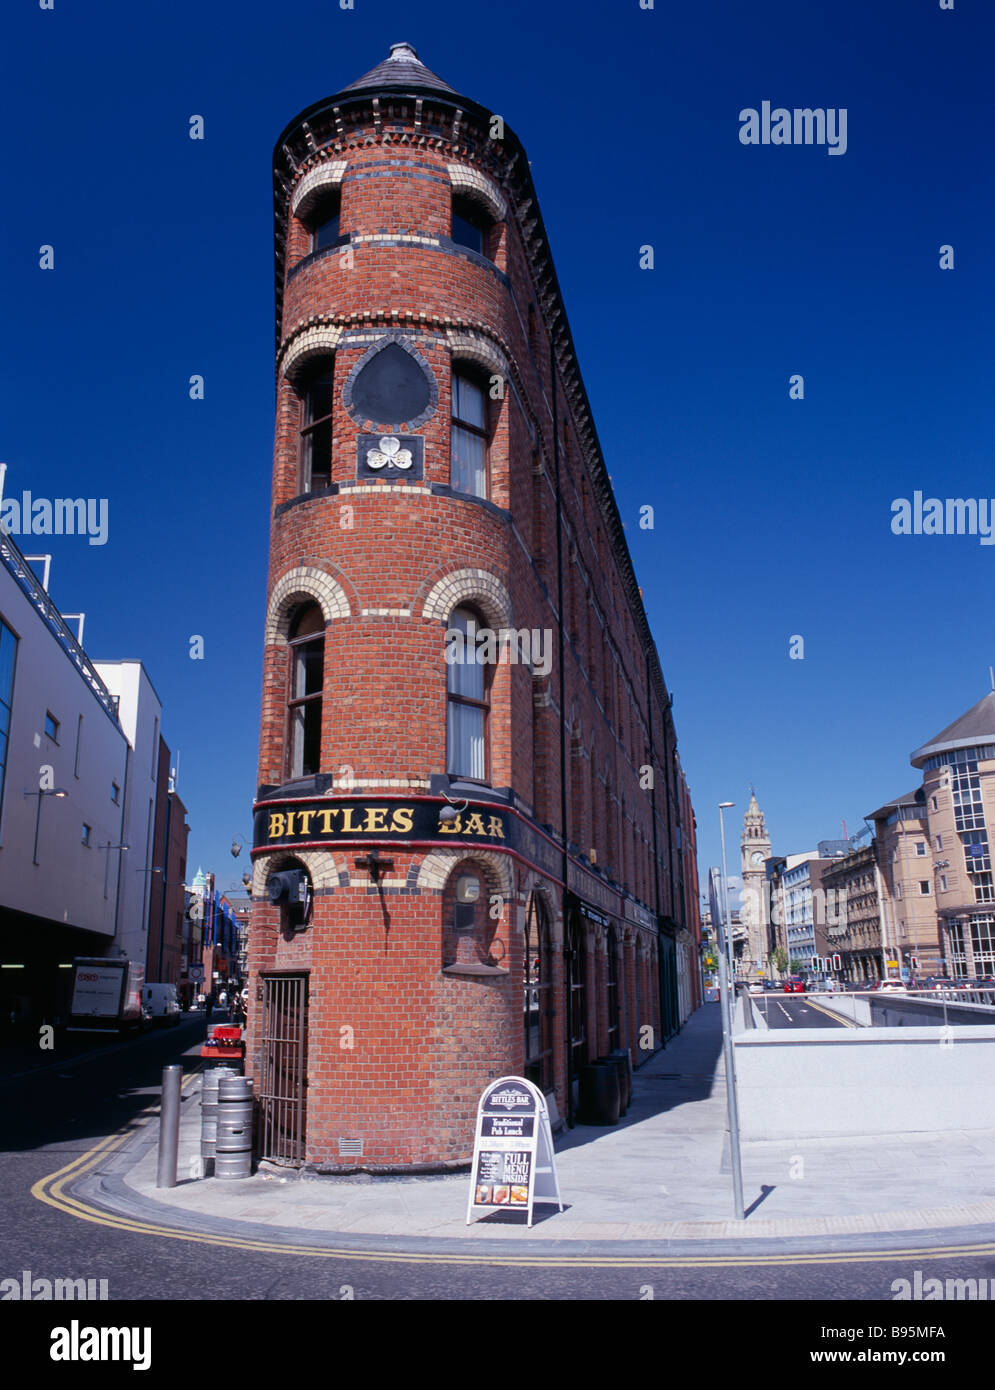 Northern Ireland, Belfast, Bittles Bar Brick Exterior Facade With A Board  Advertising Menu